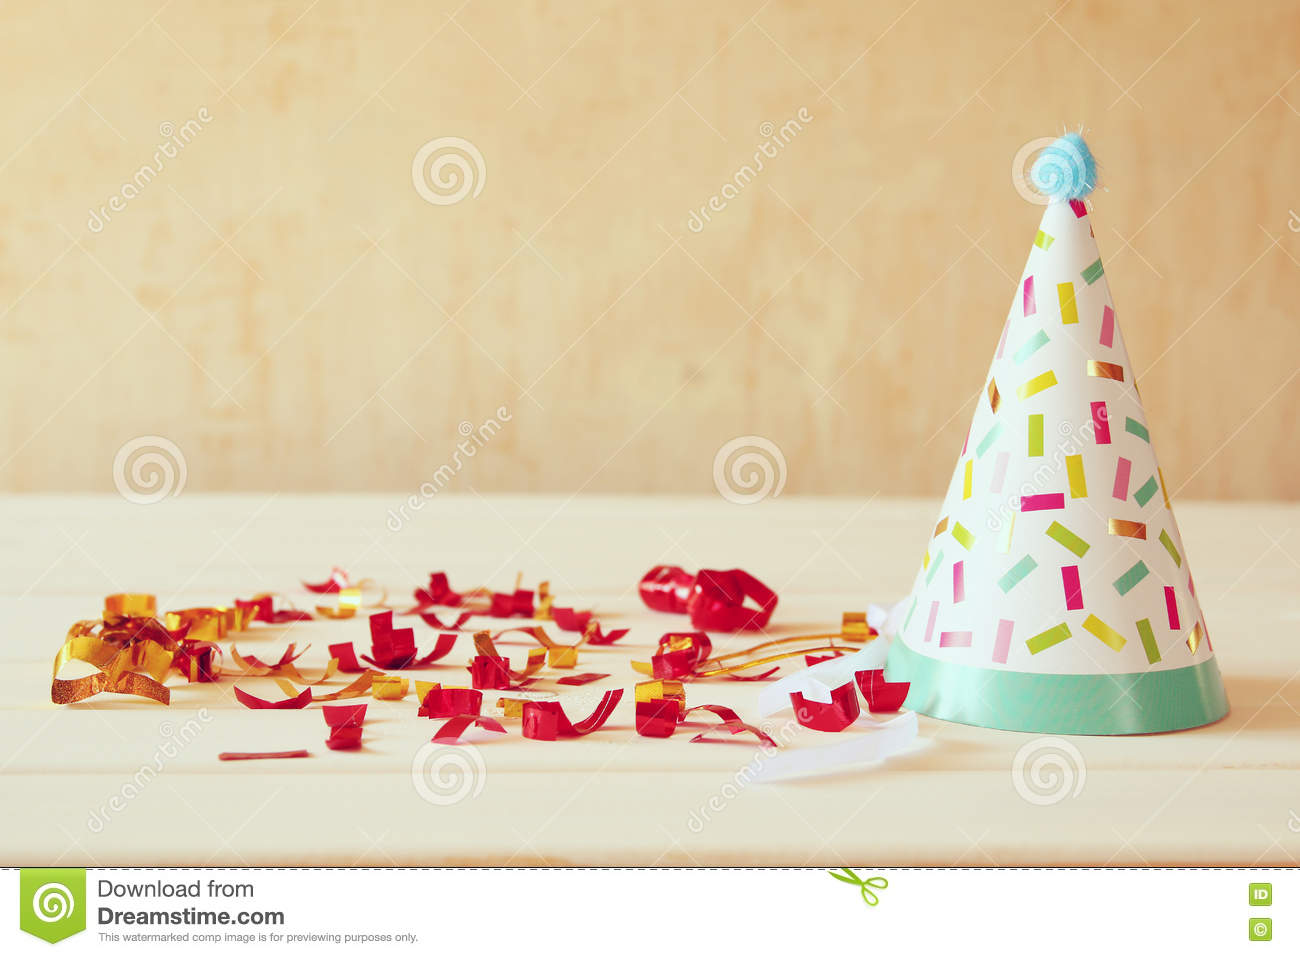 Party hat next to colorful confetti on wooden table.